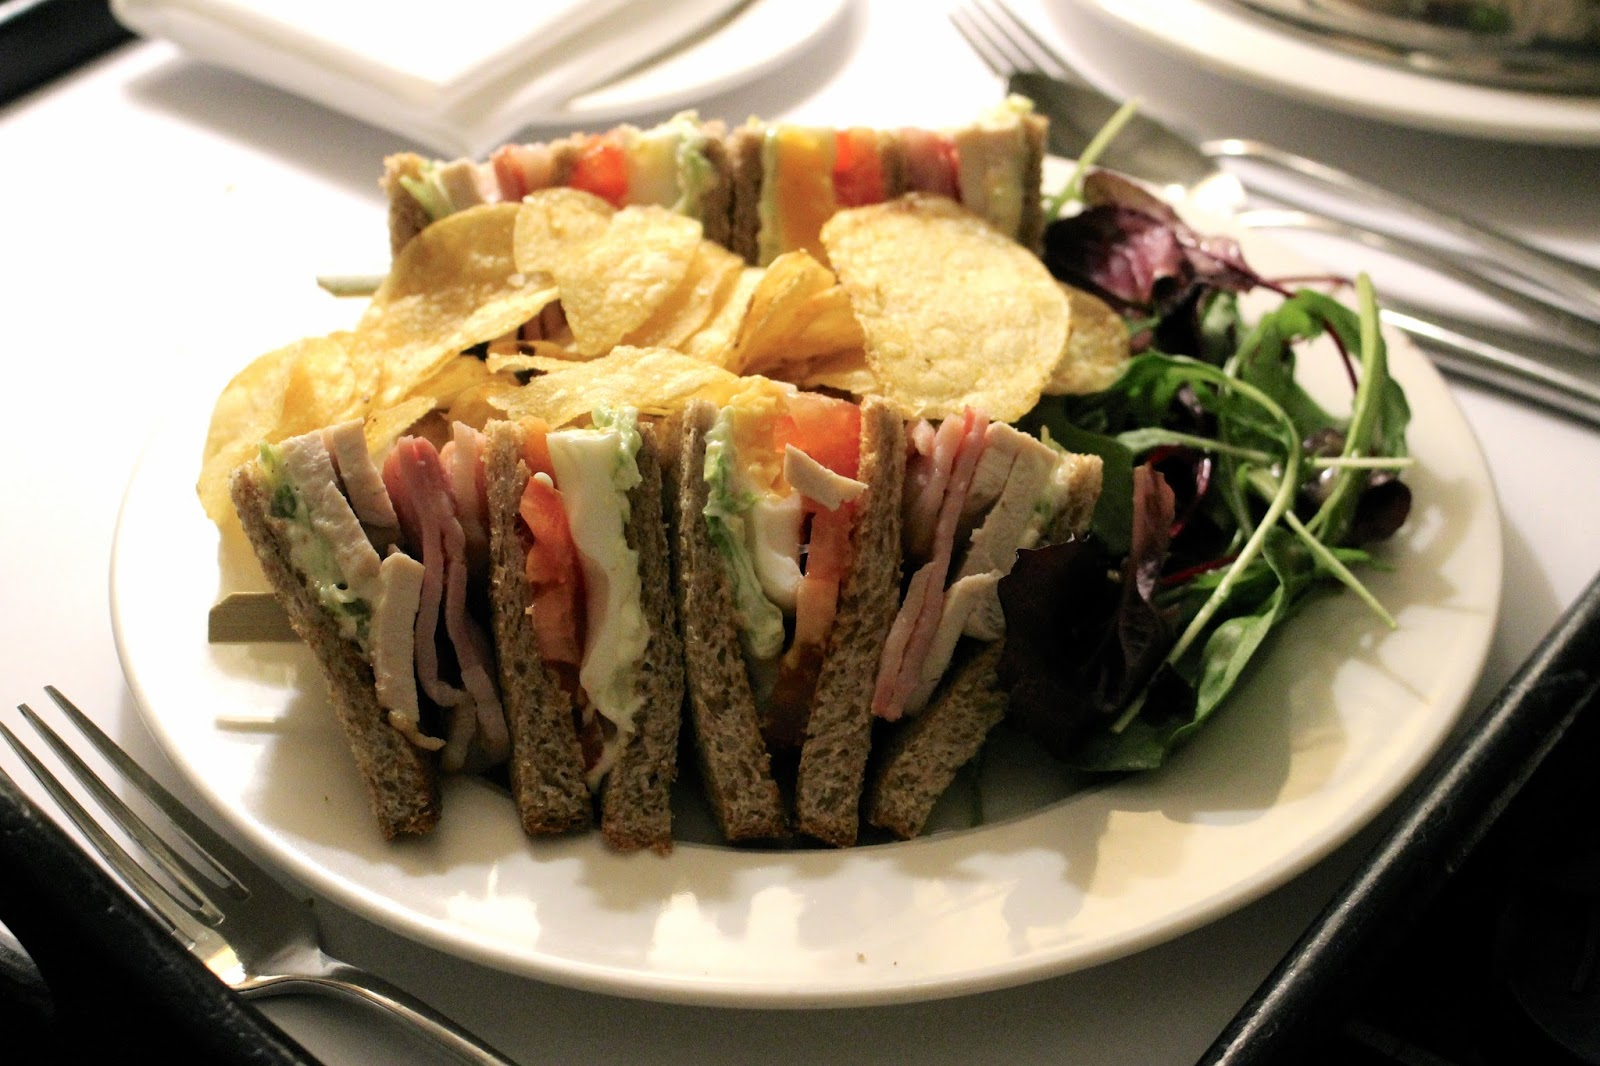 edinburgh the caledonian room service club sandwich